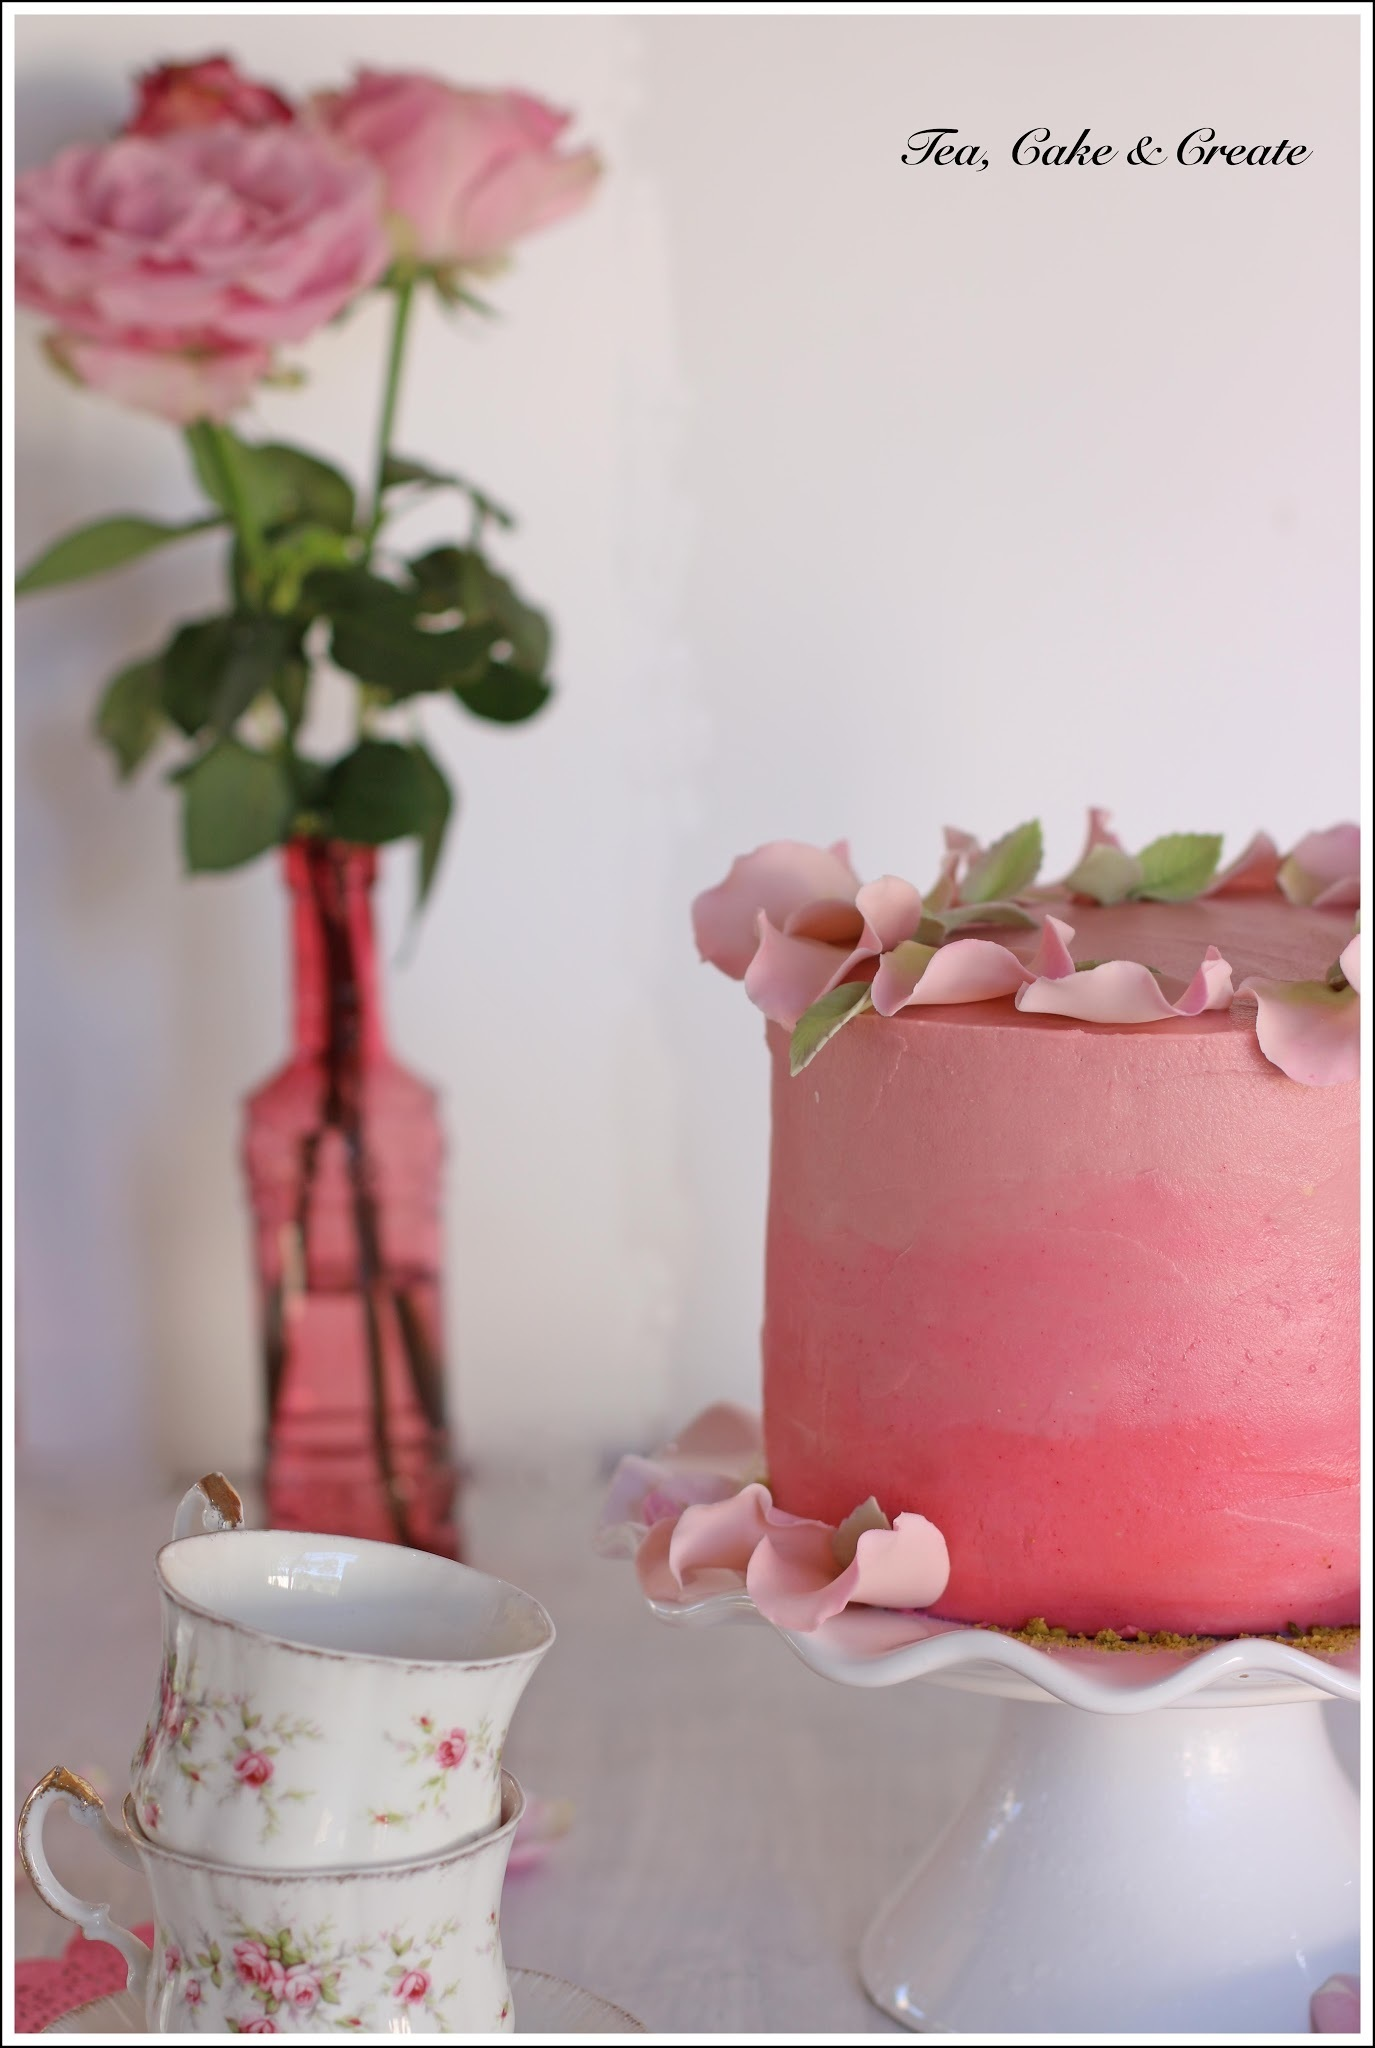 Vanilla Cake with Creamy Rose Water Icing